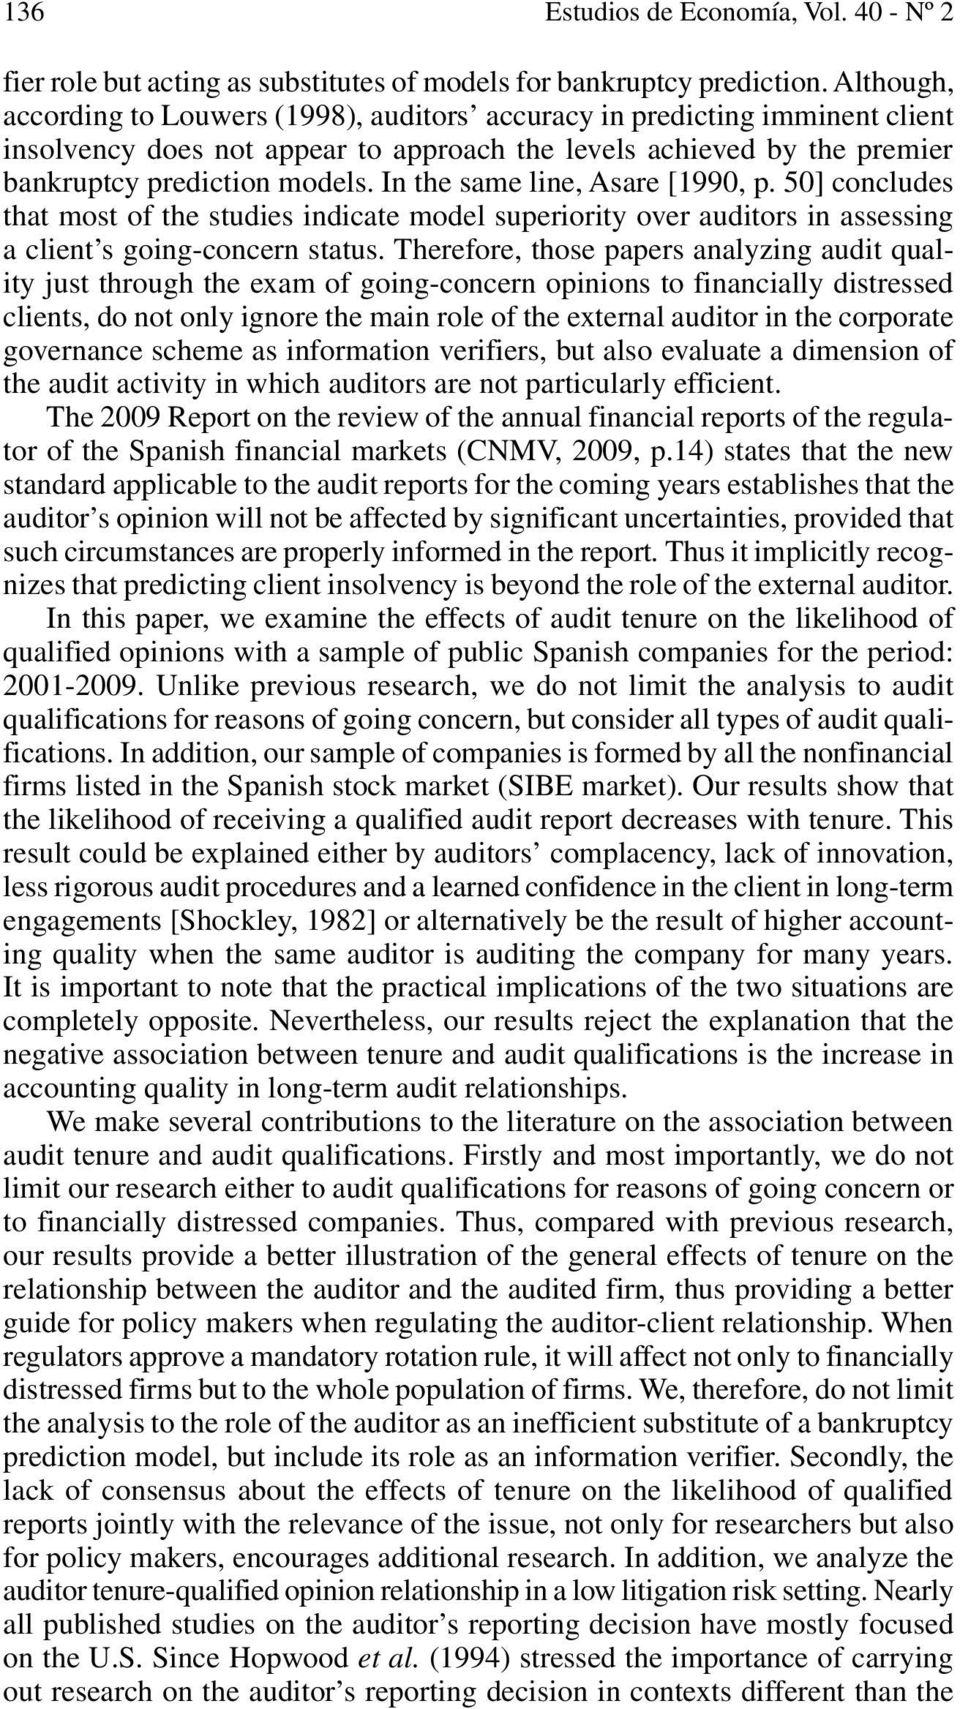 In the same line, Asare [1990, p. 50] concludes that most of the studies indicate model superiority over auditors in assessing a client s going-concern status.